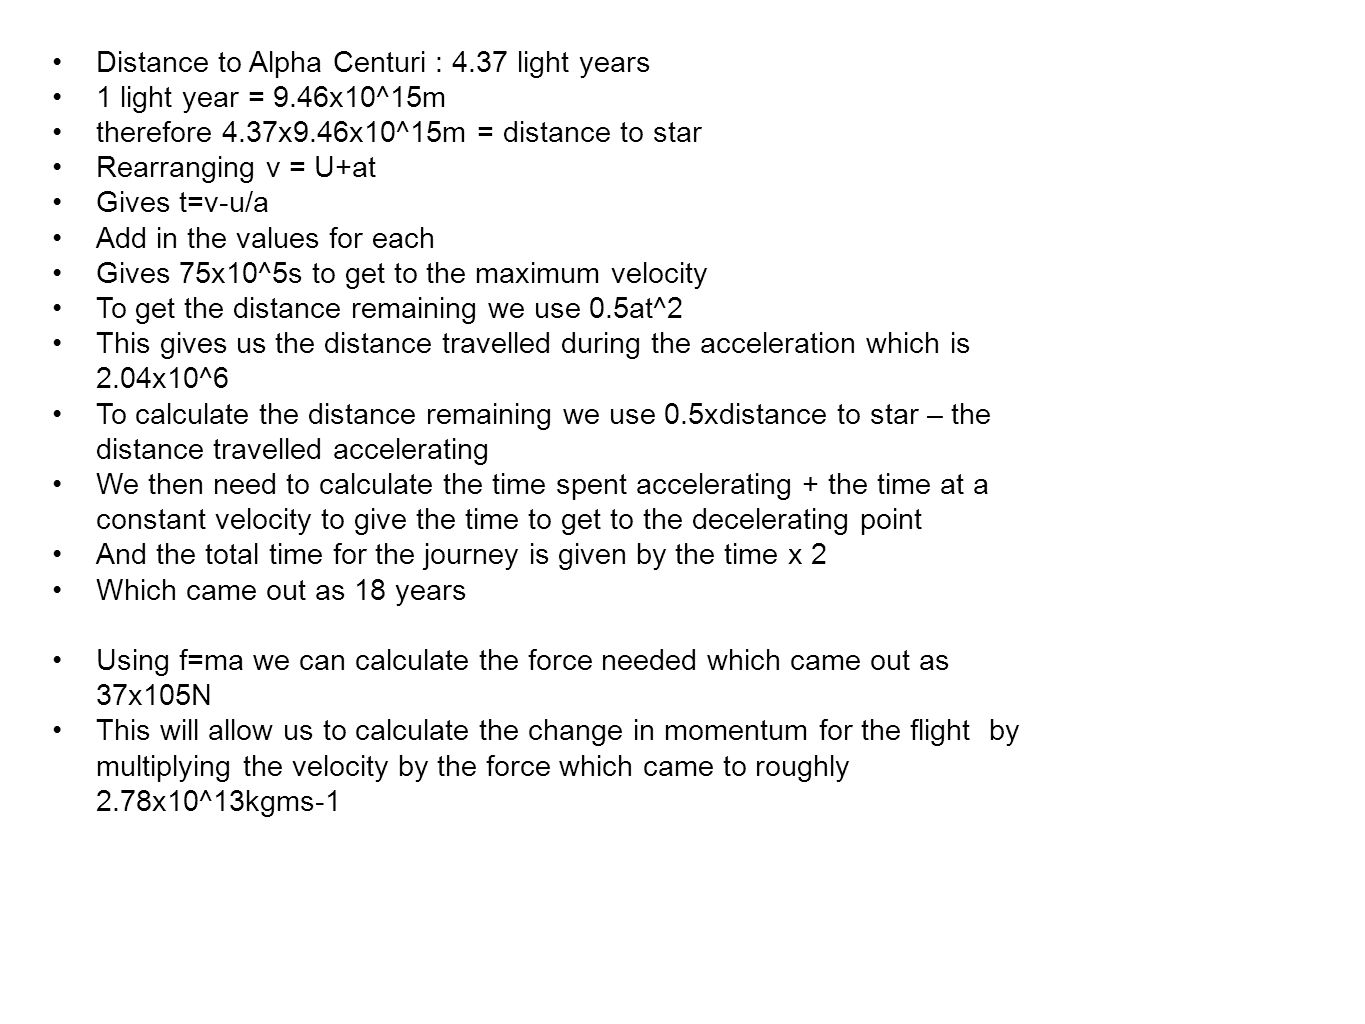 Distance to Alpha Centuri : 4.37 light years 1 light year = 9.46x10^15m therefore 4.37x9.46x10^15m = distance to star Rearranging v = U+at Gives t=v-u/a Add in the values for each Gives 75x10^5s to get to the maximum velocity To get the distance remaining we use 0.5at^2 This gives us the distance travelled during the acceleration which is 2.04x10^6 To calculate the distance remaining we use 0.5xdistance to star – the distance travelled accelerating We then need to calculate the time spent accelerating + the time at a constant velocity to give the time to get to the decelerating point And the total time for the journey is given by the time x 2 Which came out as 18 years Using f=ma we can calculate the force needed which came out as 37x105N This will allow us to calculate the change in momentum for the flight by multiplying the velocity by the force which came to roughly 2.78x10^13kgms-1